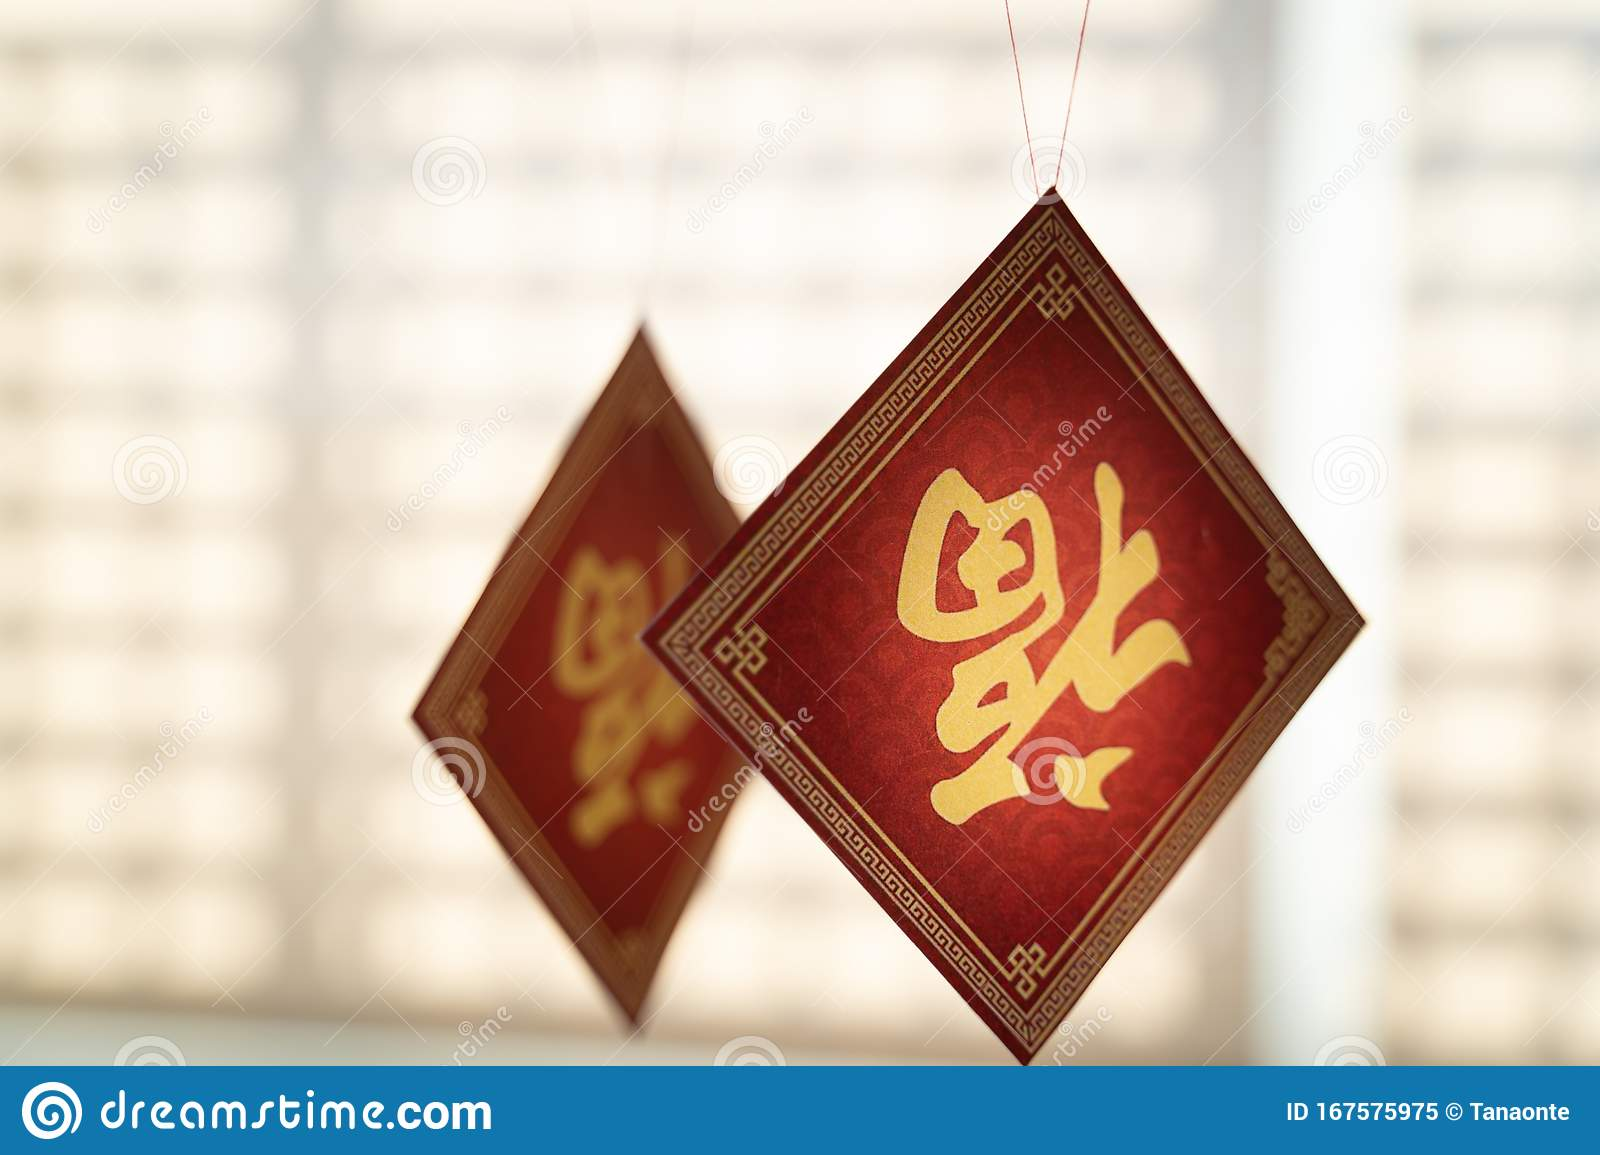 Chinese New Year Decoration With Character FU Displayed ...